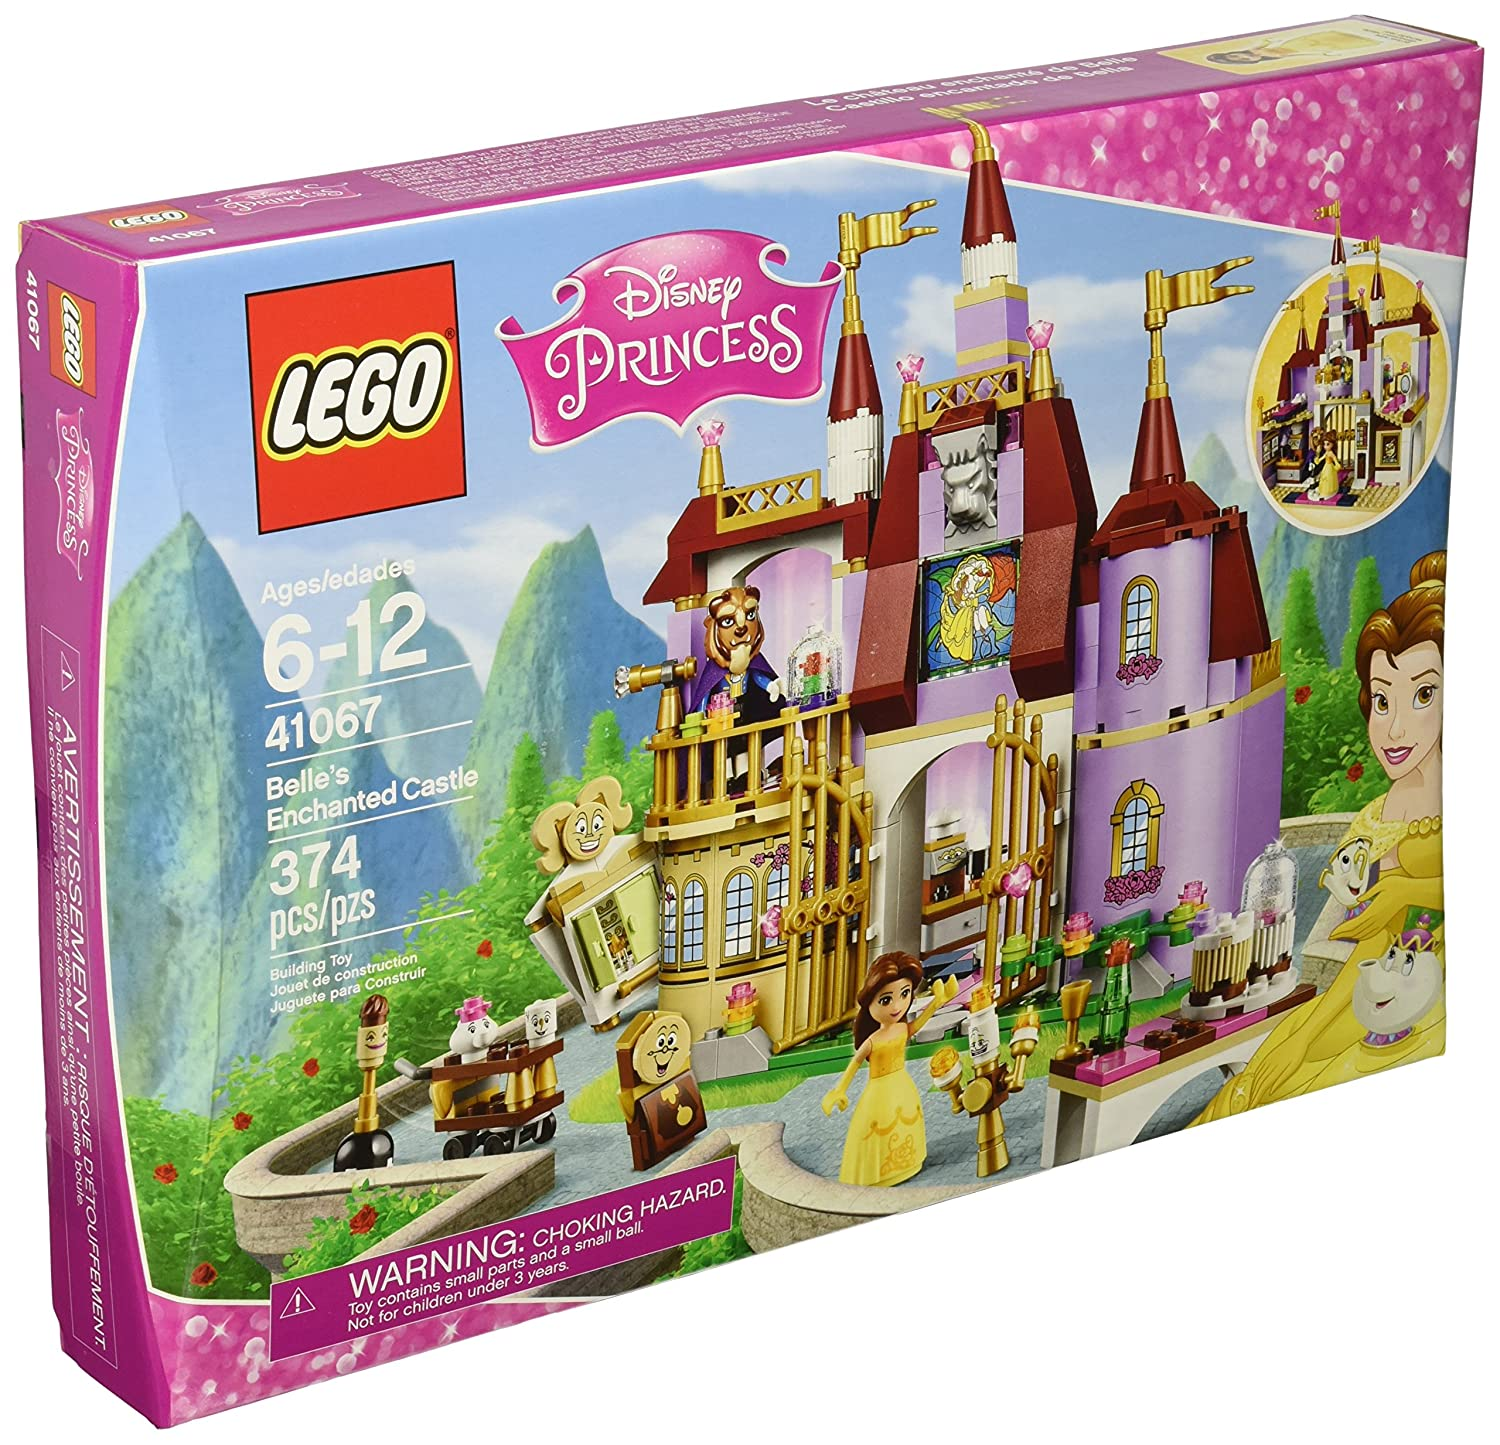 Princess Belle's Enchanted Castle